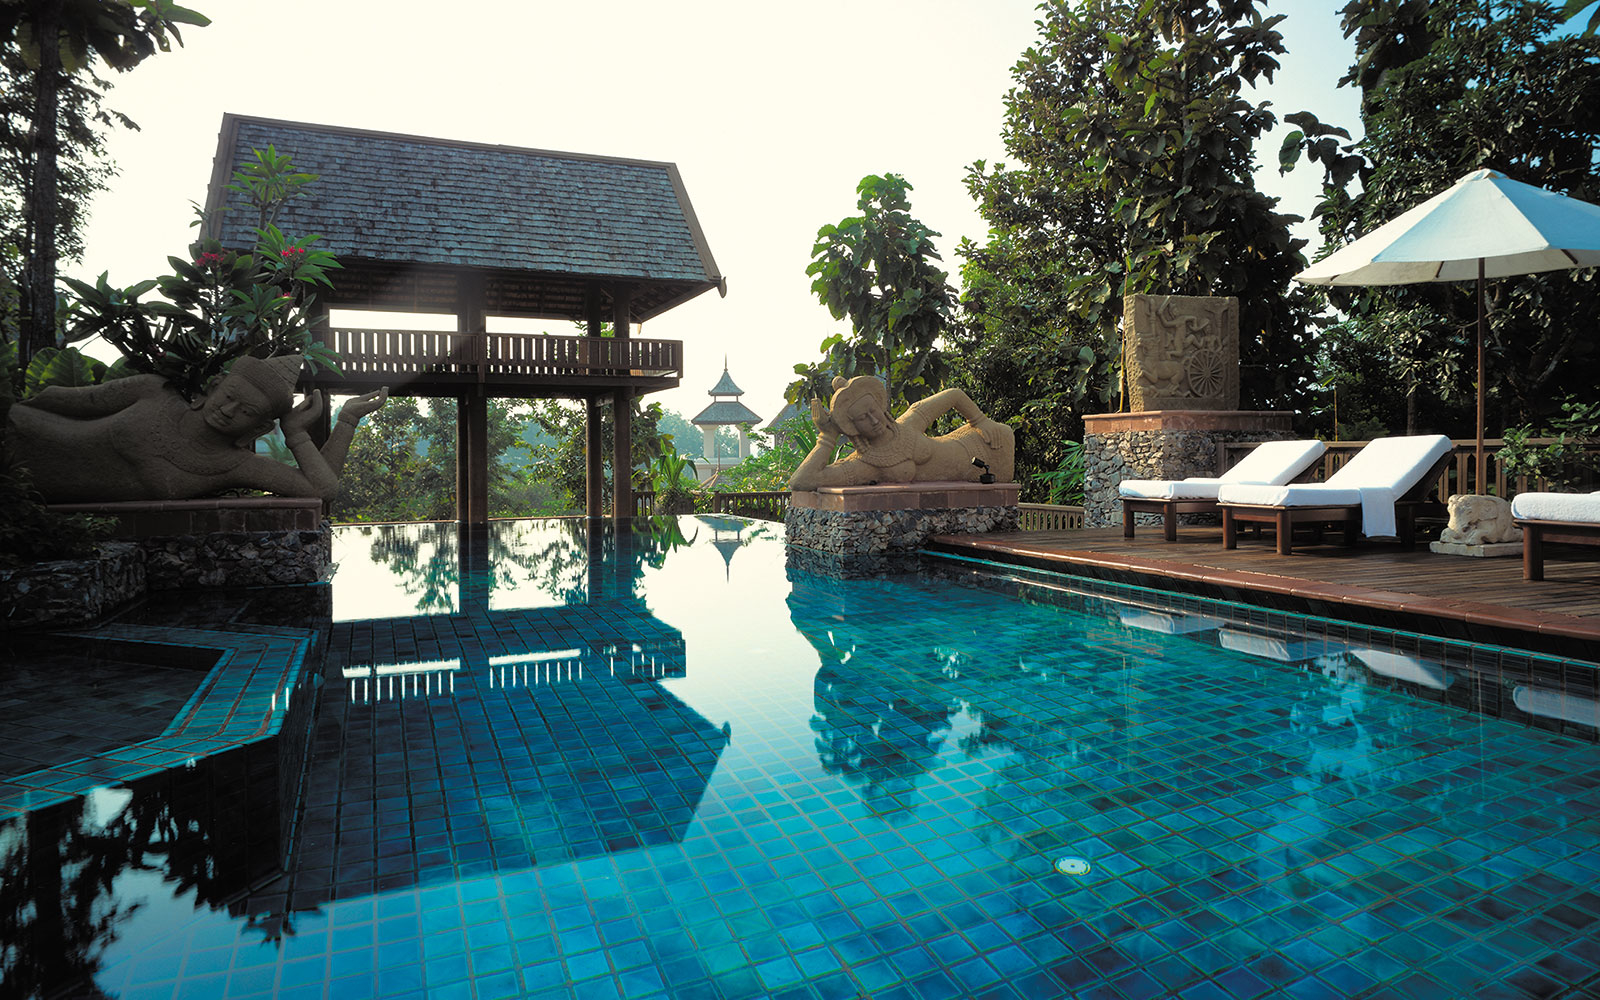 No. 6 (tie): Four Seasons Resort Chiang Mai, Chiang Mai, Thailand